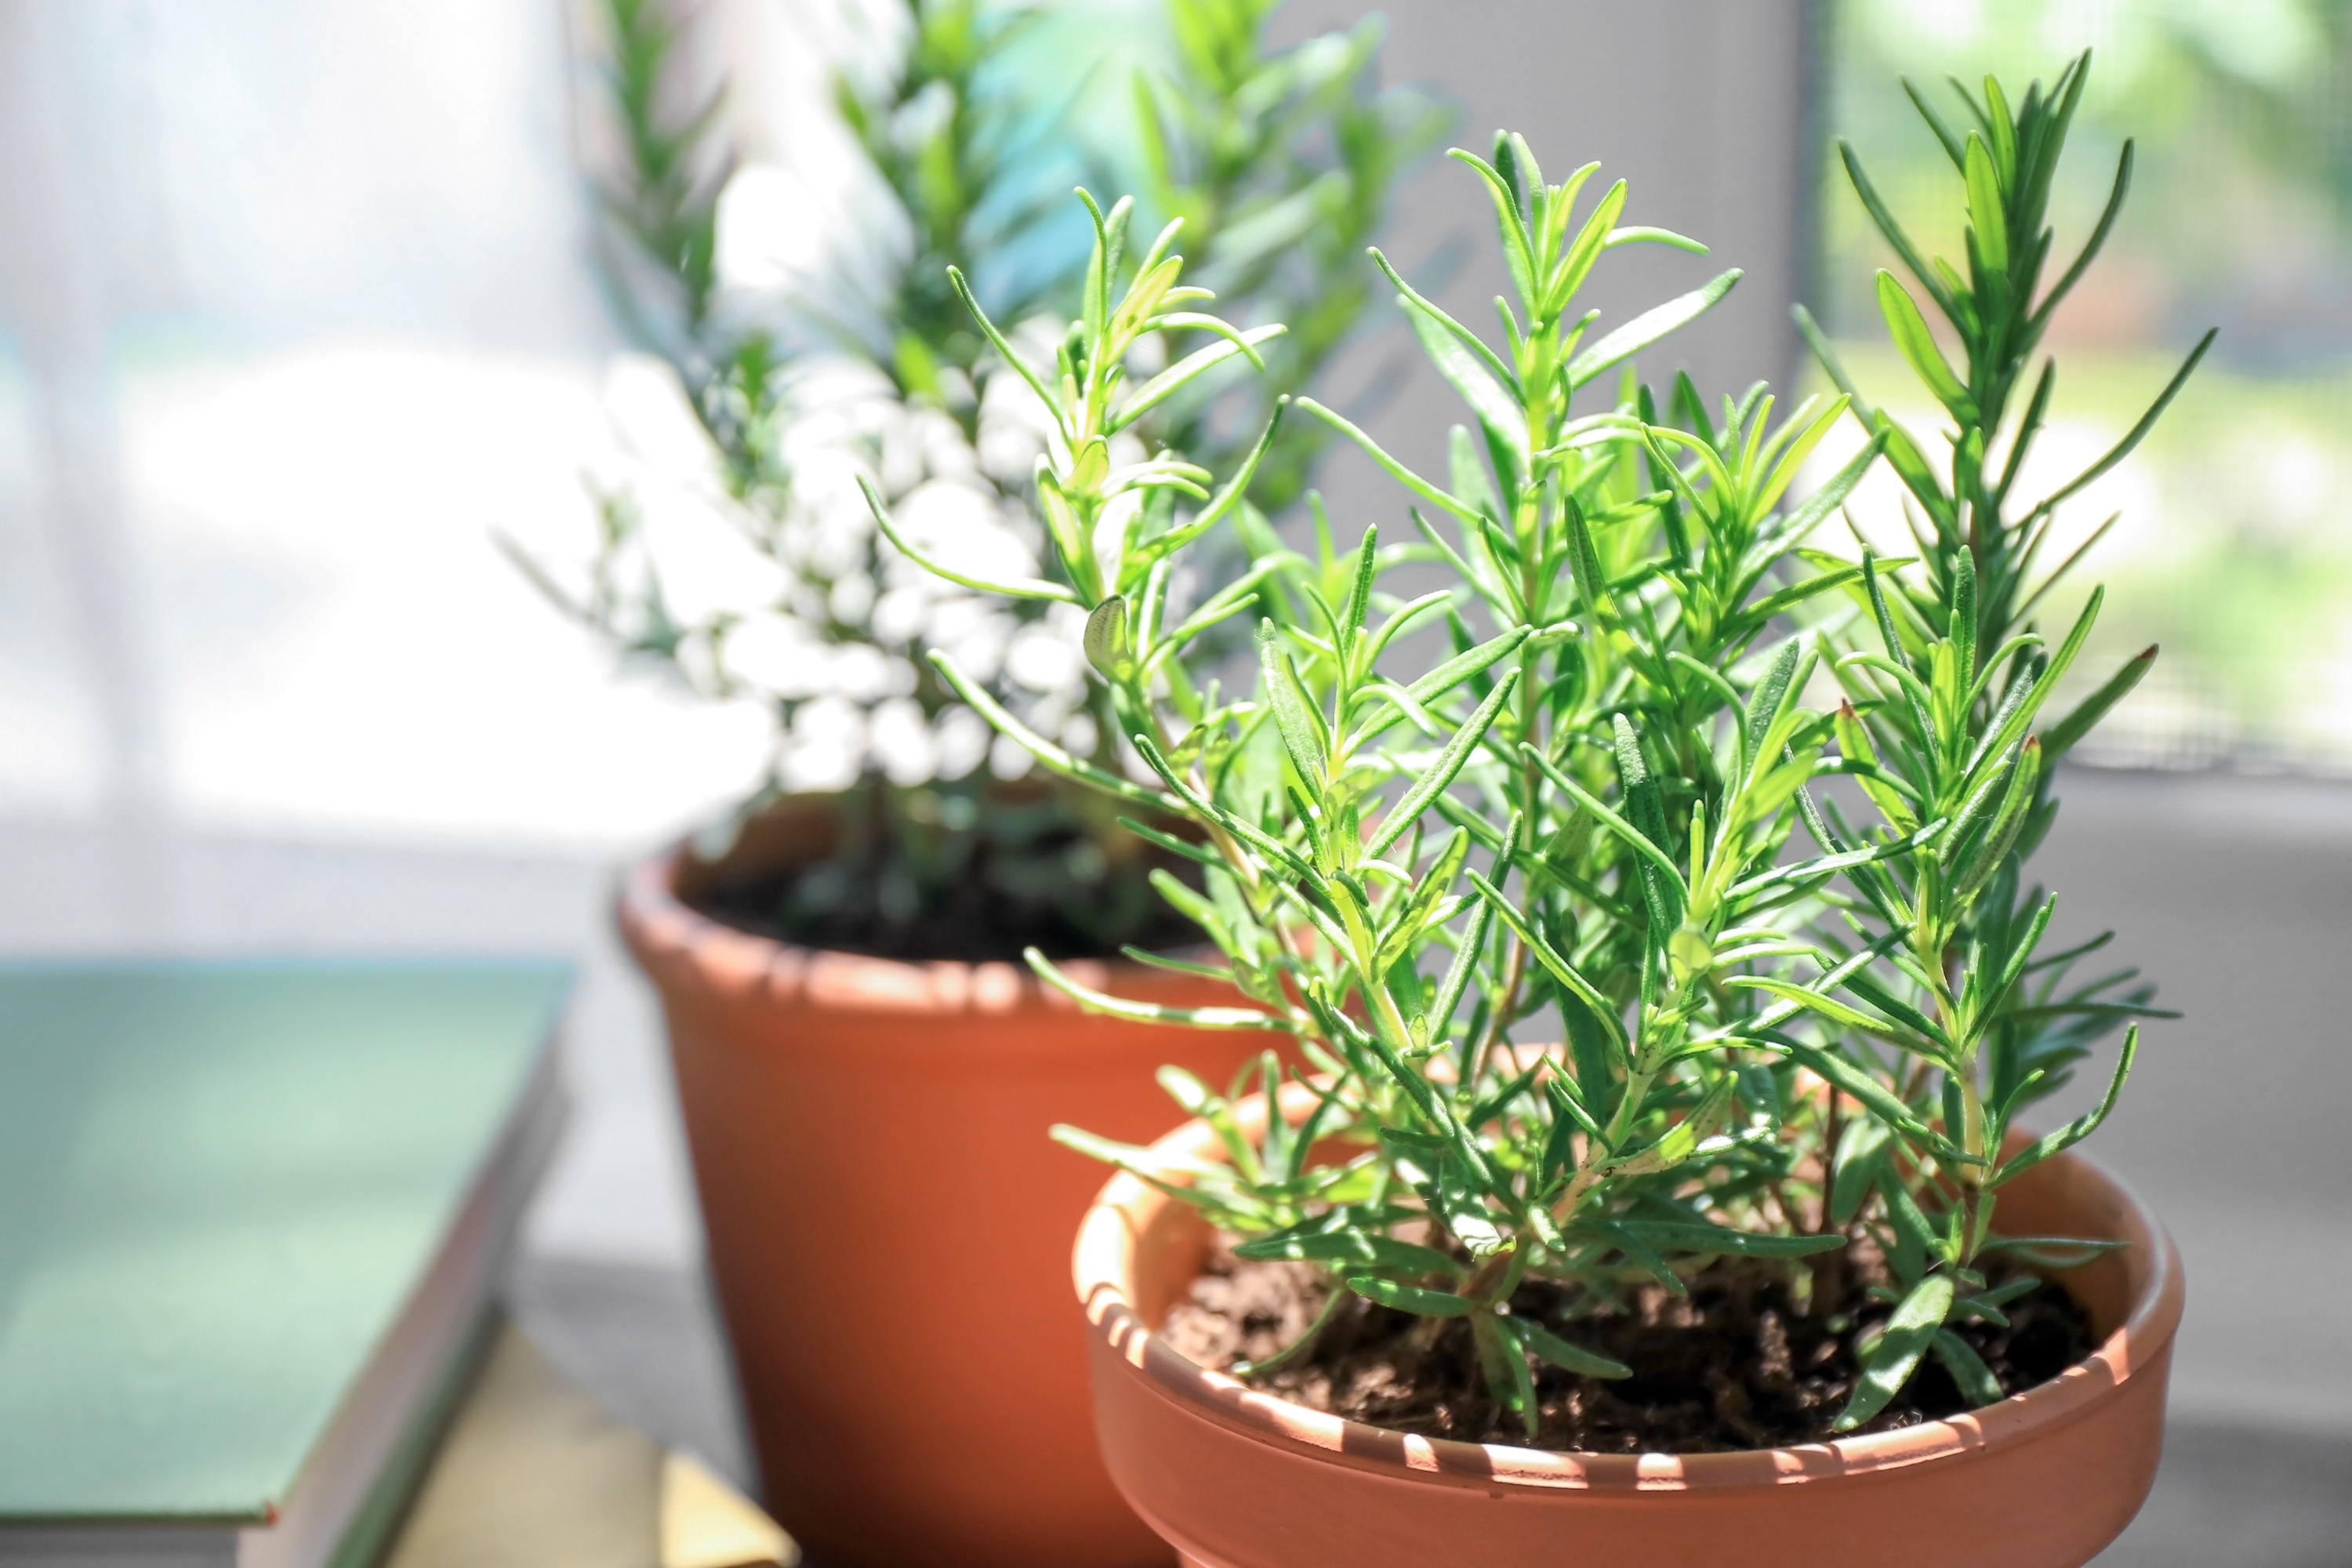 19 Health Benefits of Rosemary + Side Effects - SelfHacked